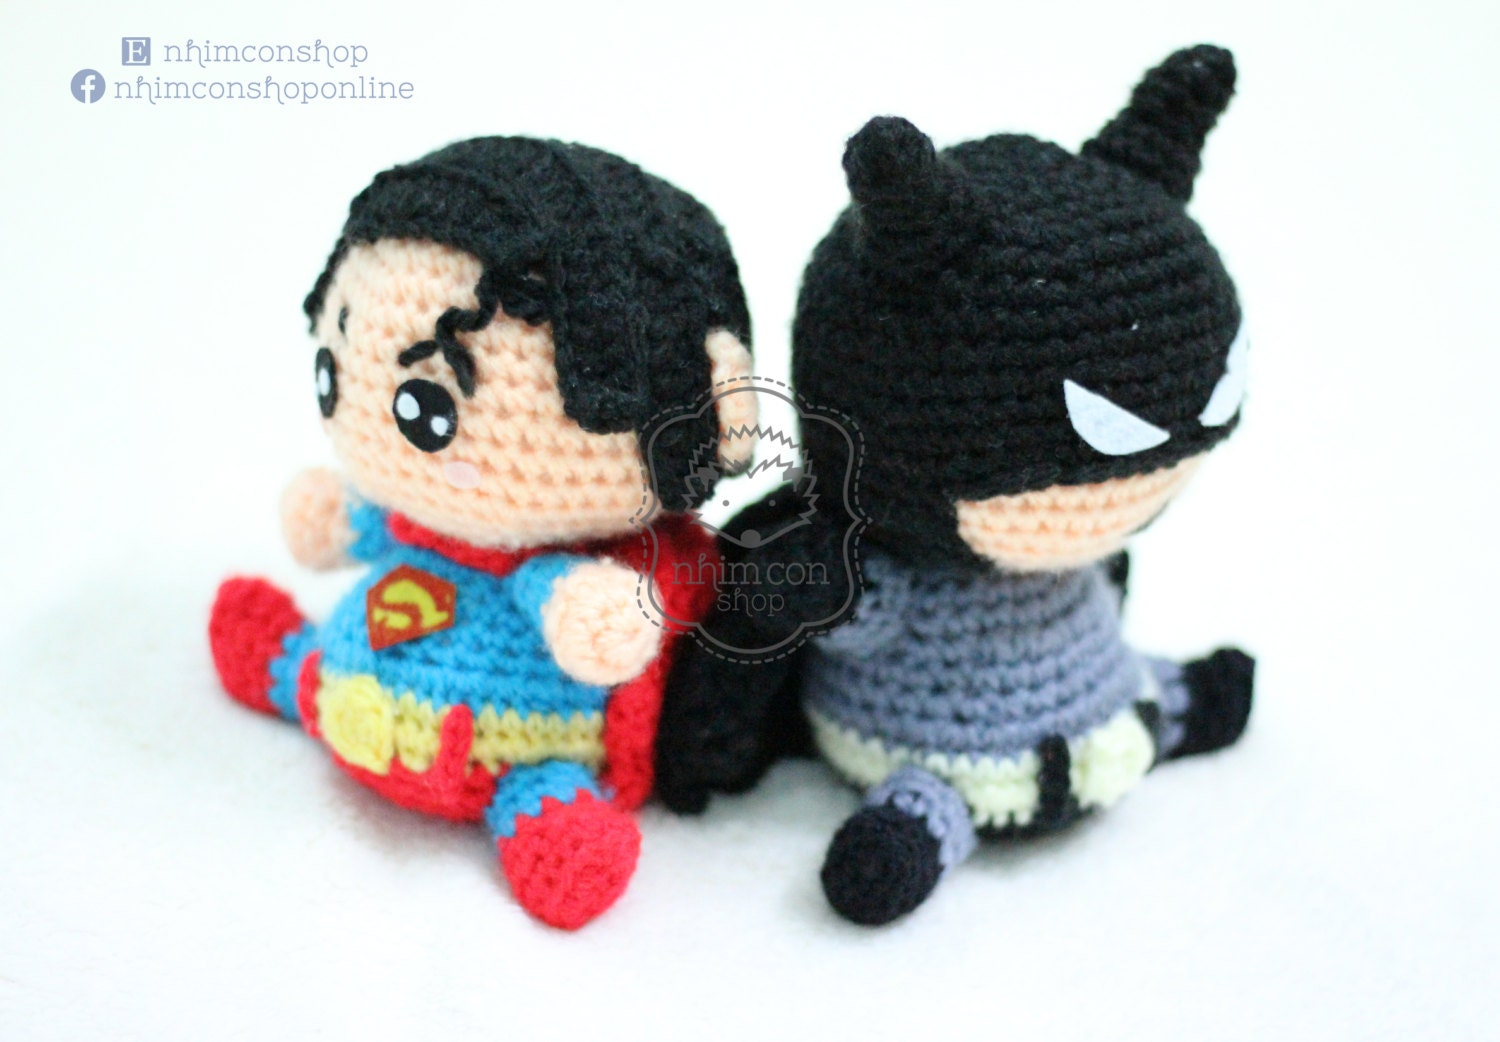 Amigurumi Crochet Batman : Superman VS Batman Chibi Amigurumi Plushie Stuffed Toy Doll